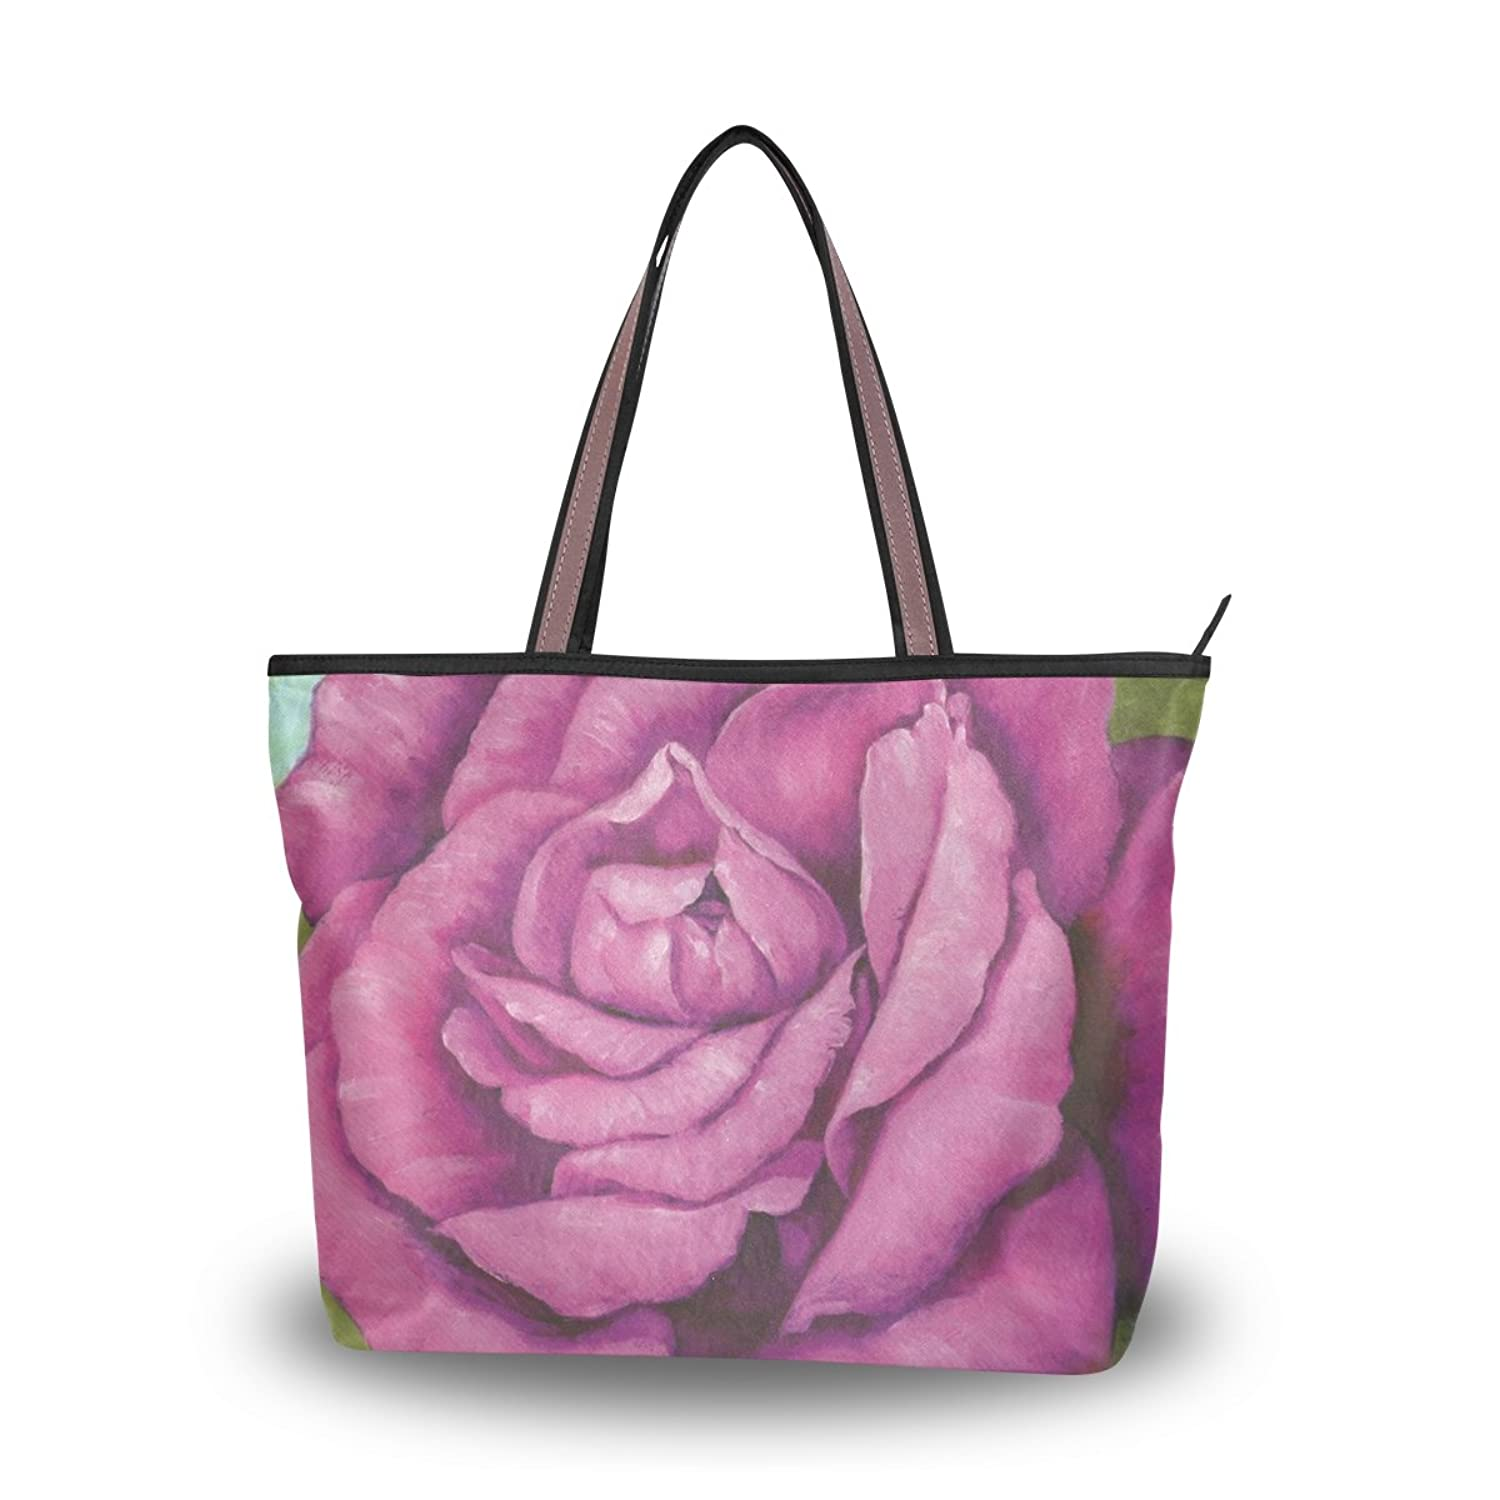 Yochoice Women's Shoulder Bags,Retro Vintage Art Floral Oil Painting,Tote Bag Design 13